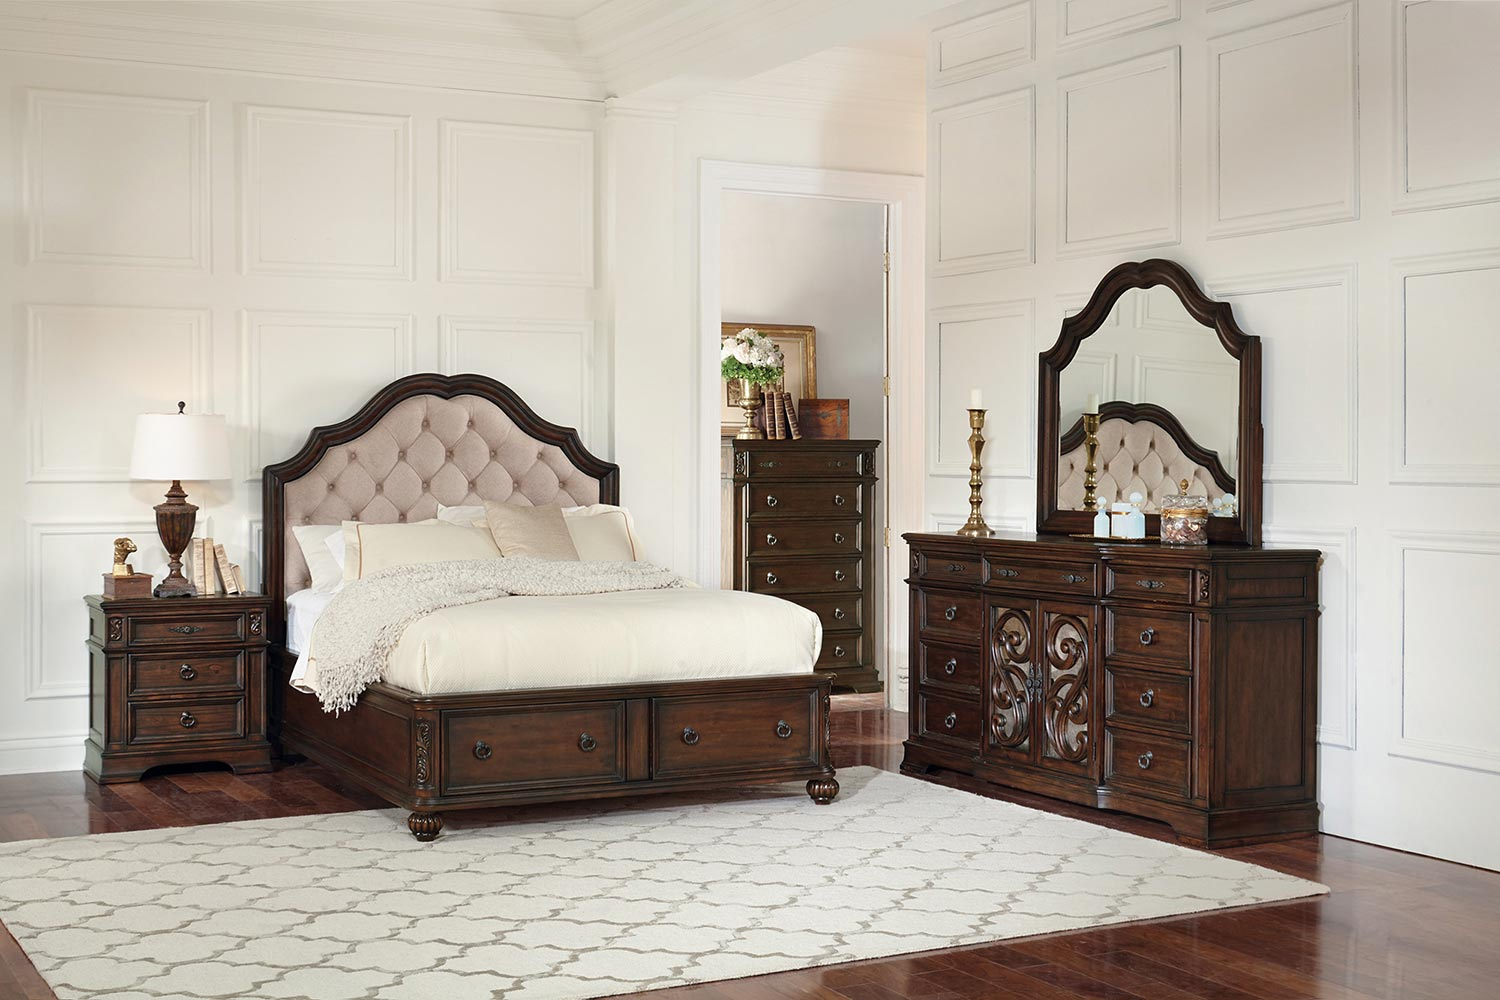 Coaster Ilana Bedroom Set - Antique Java